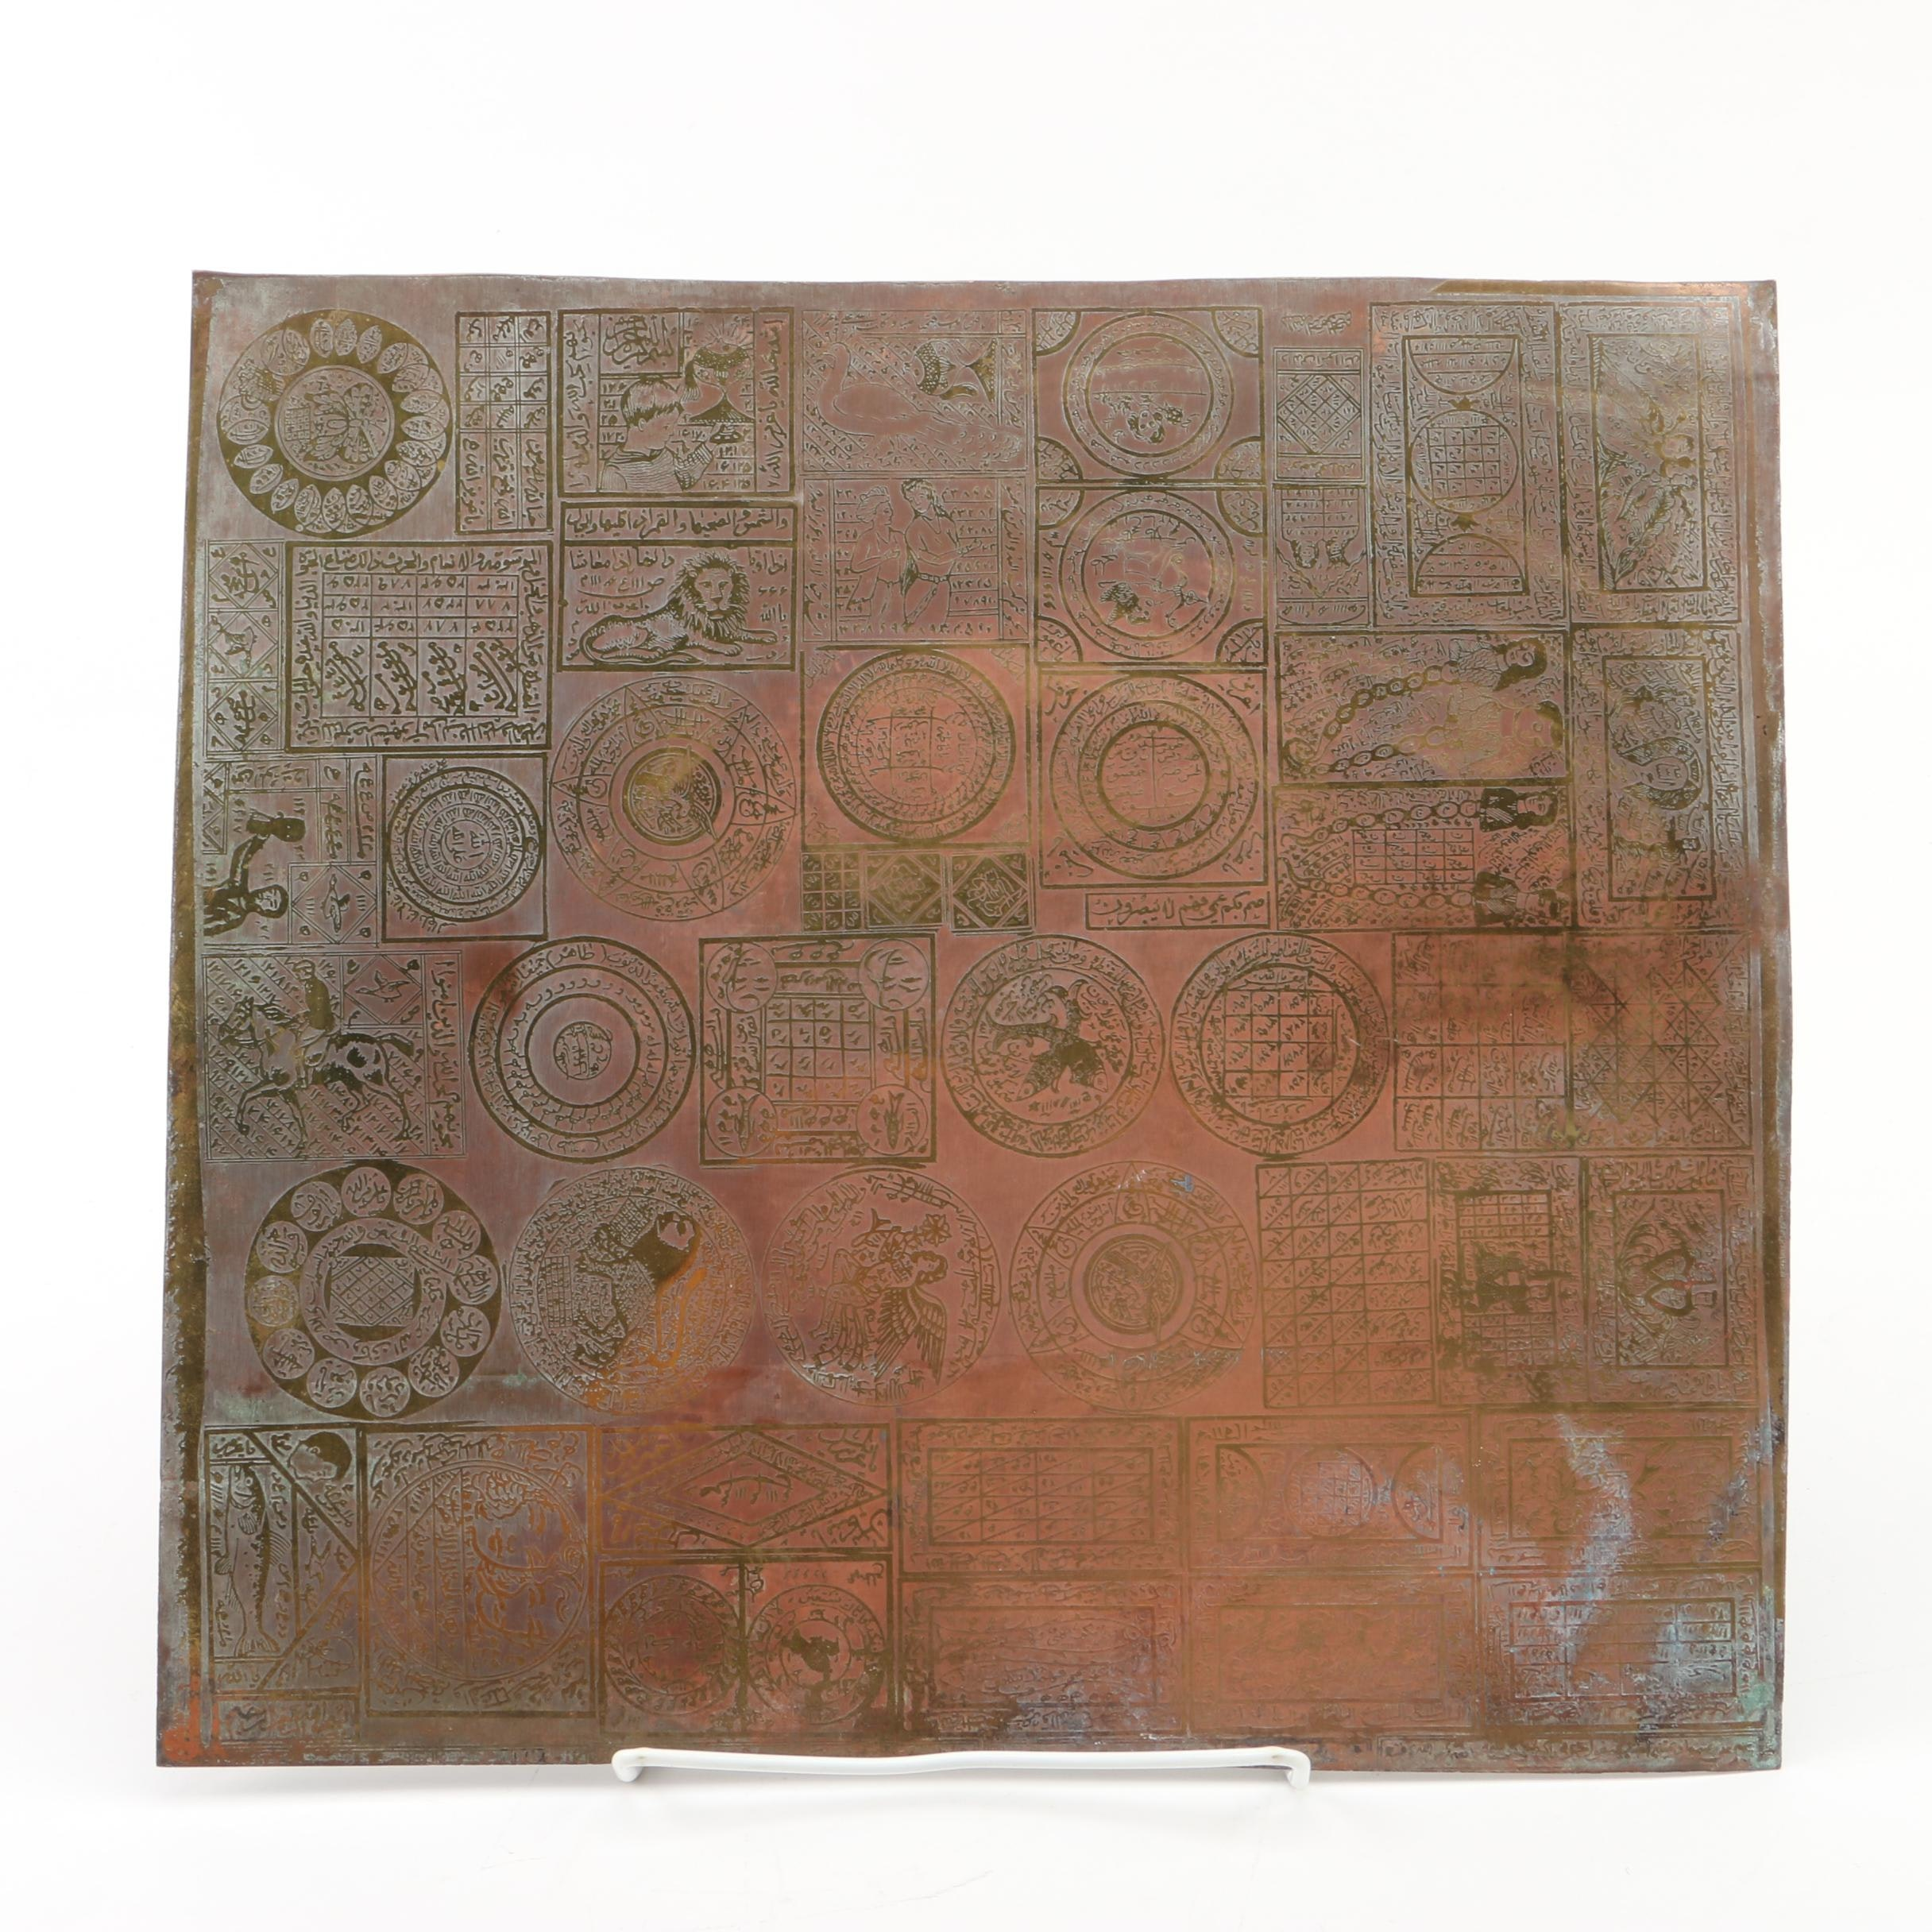 Copper Printing Plate with Text and Symbolic Imagery